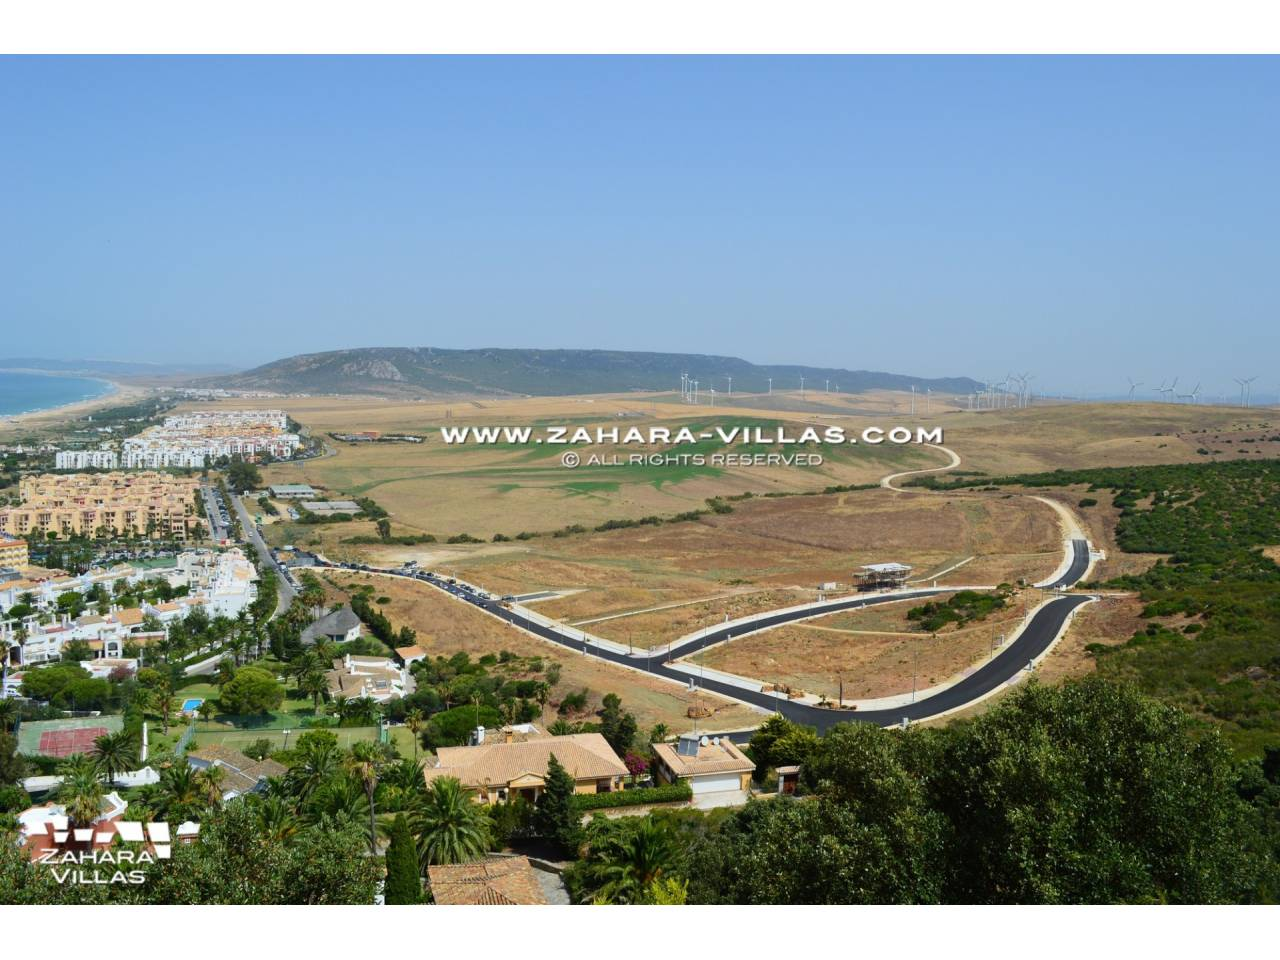 Imagen 3 de Plot in a new residential area overlooking the Sea and the future Golf Course